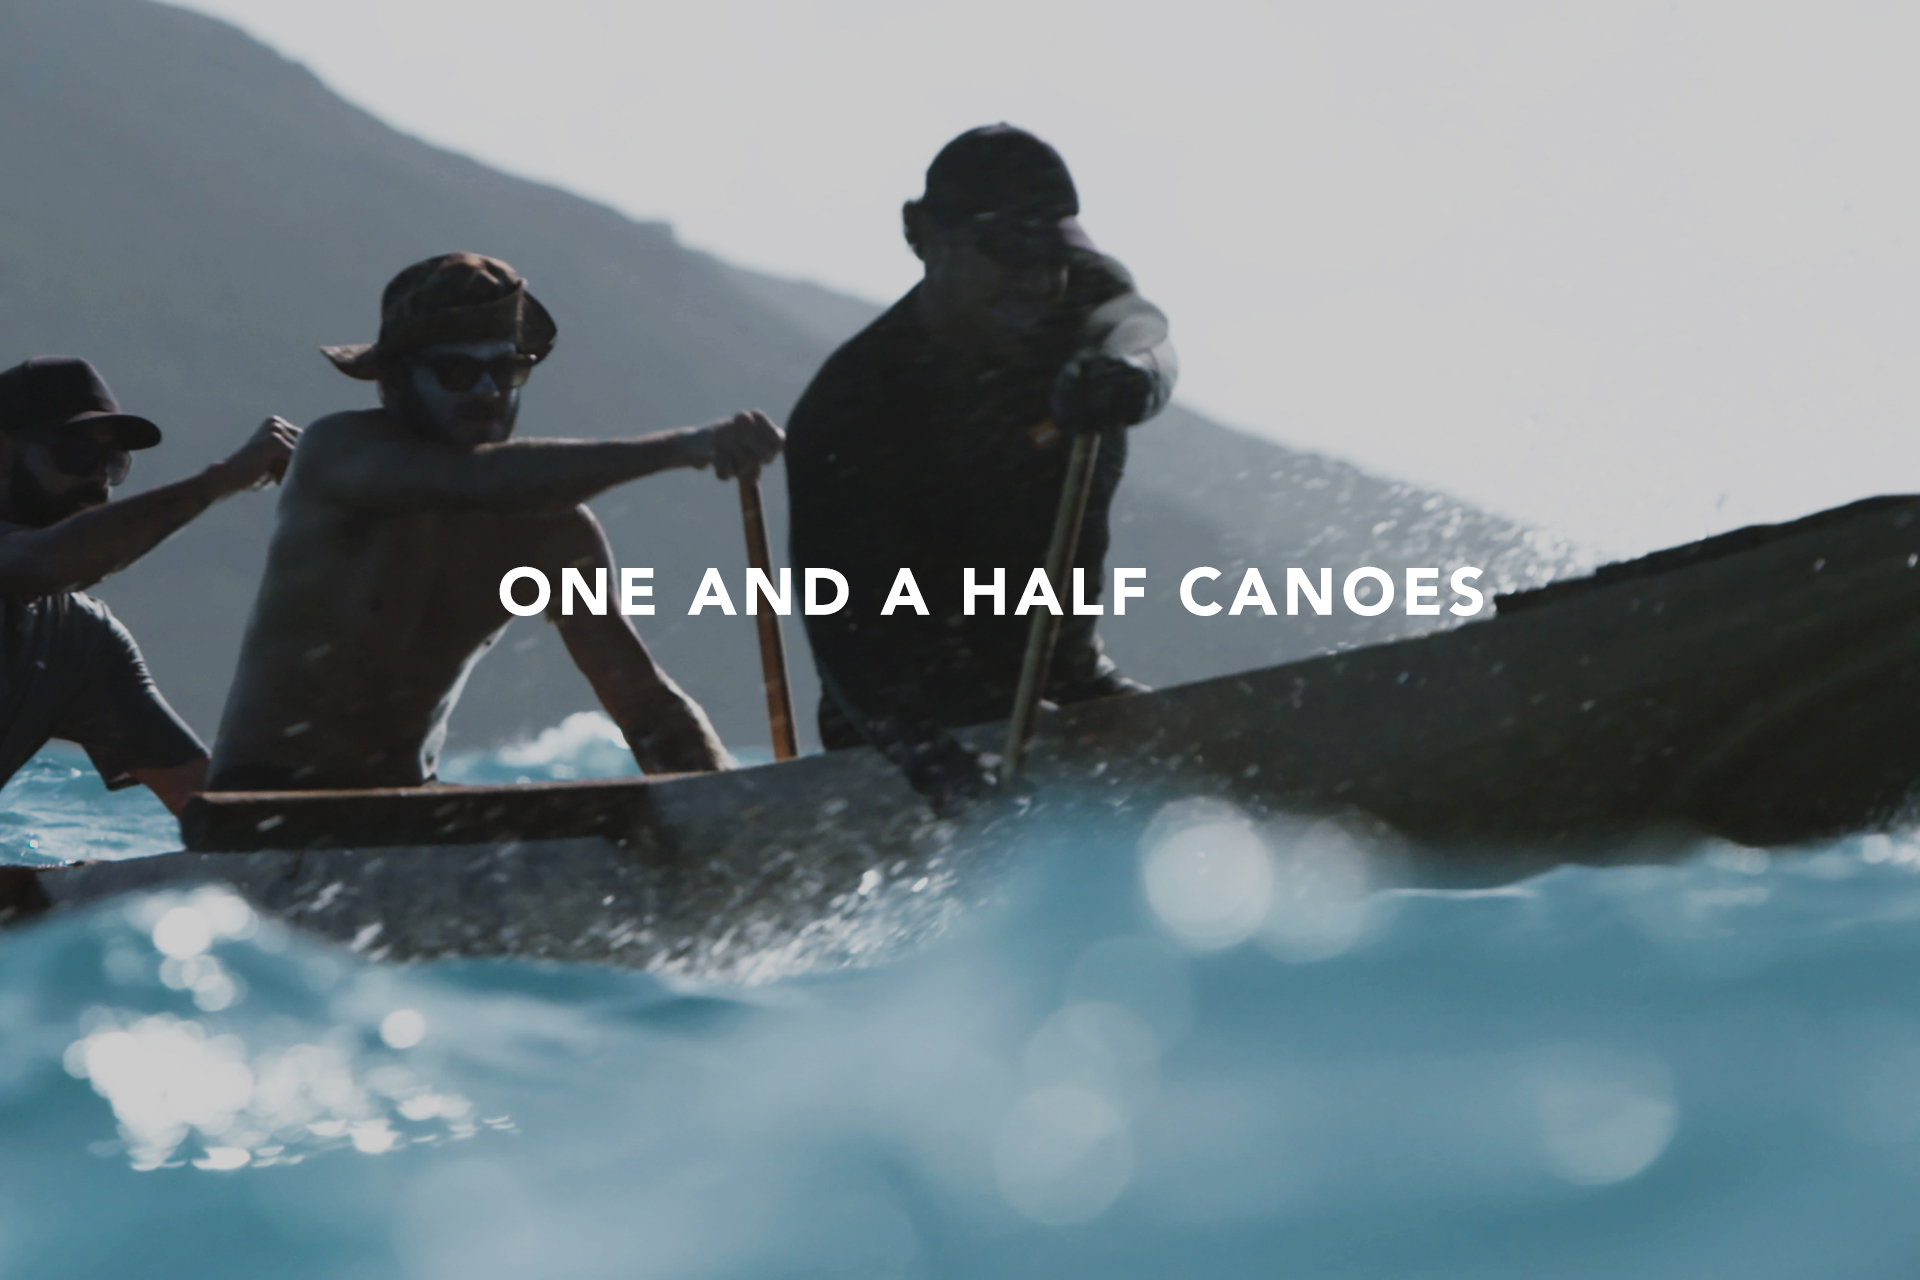 ONE AND A HALF CANOES